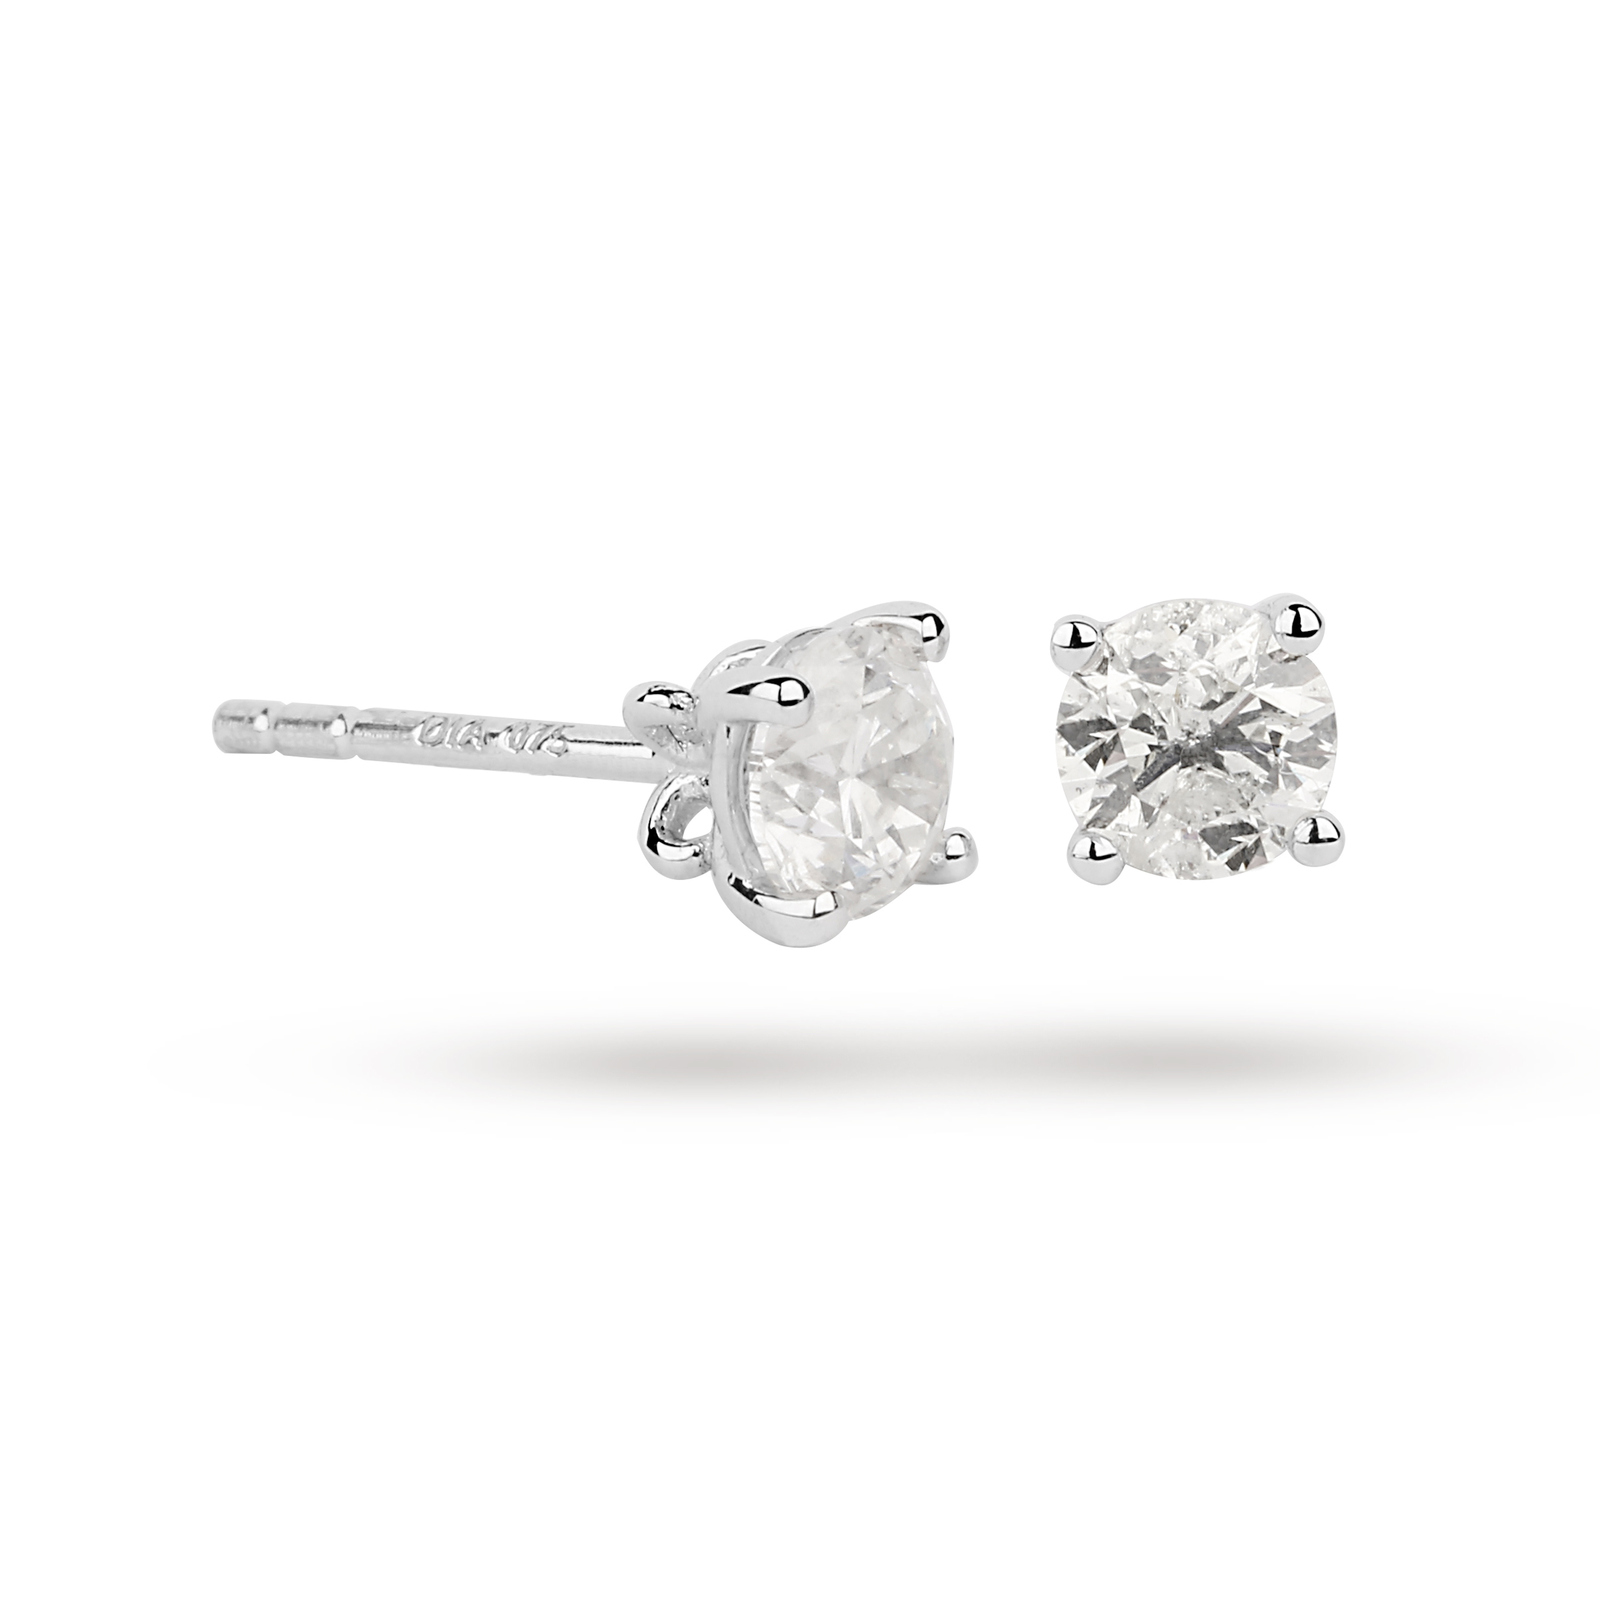 18ct White Gold 0.50ct Brilliant Cut Stud Earrings